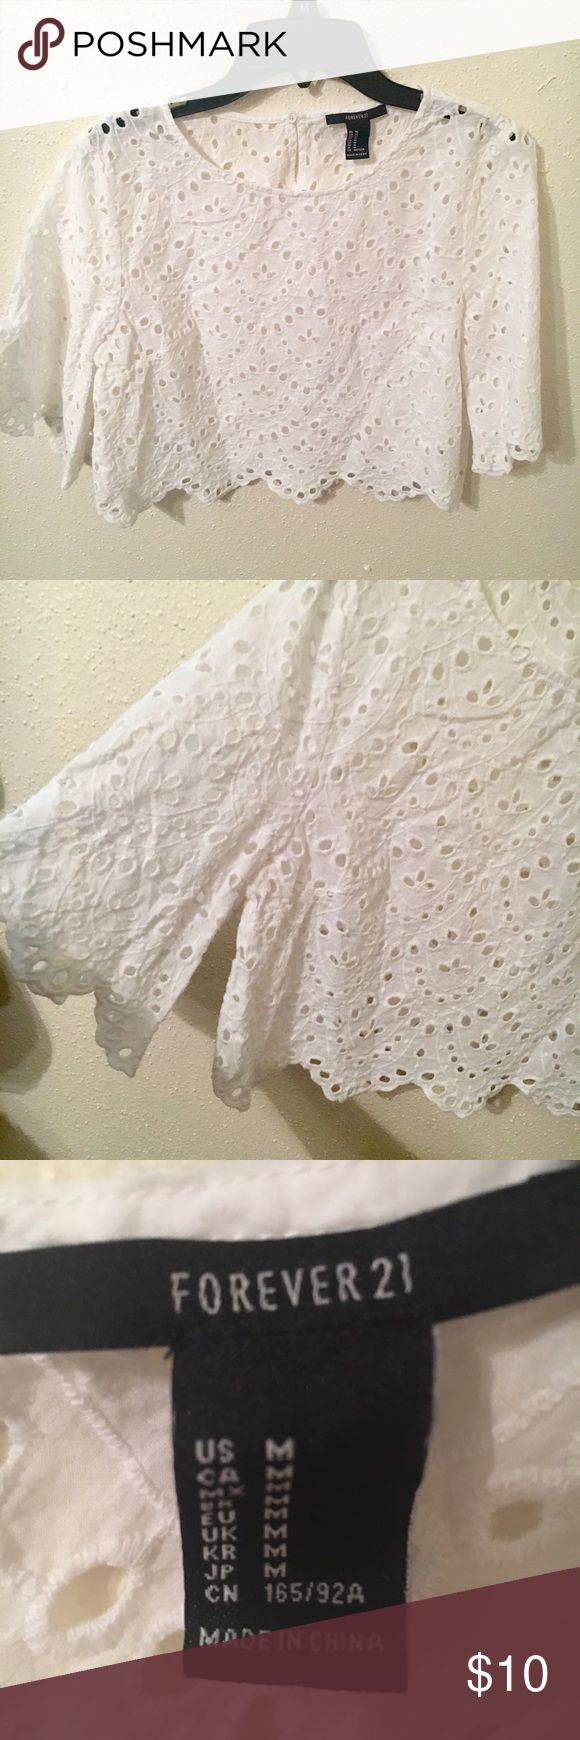 White Lace Crop Top This a super cute white crop top to wear with a colored skirt and some boots. Great college game day attire. Only worn 2 times, no stains! Forever 21 Tops Crop Tops